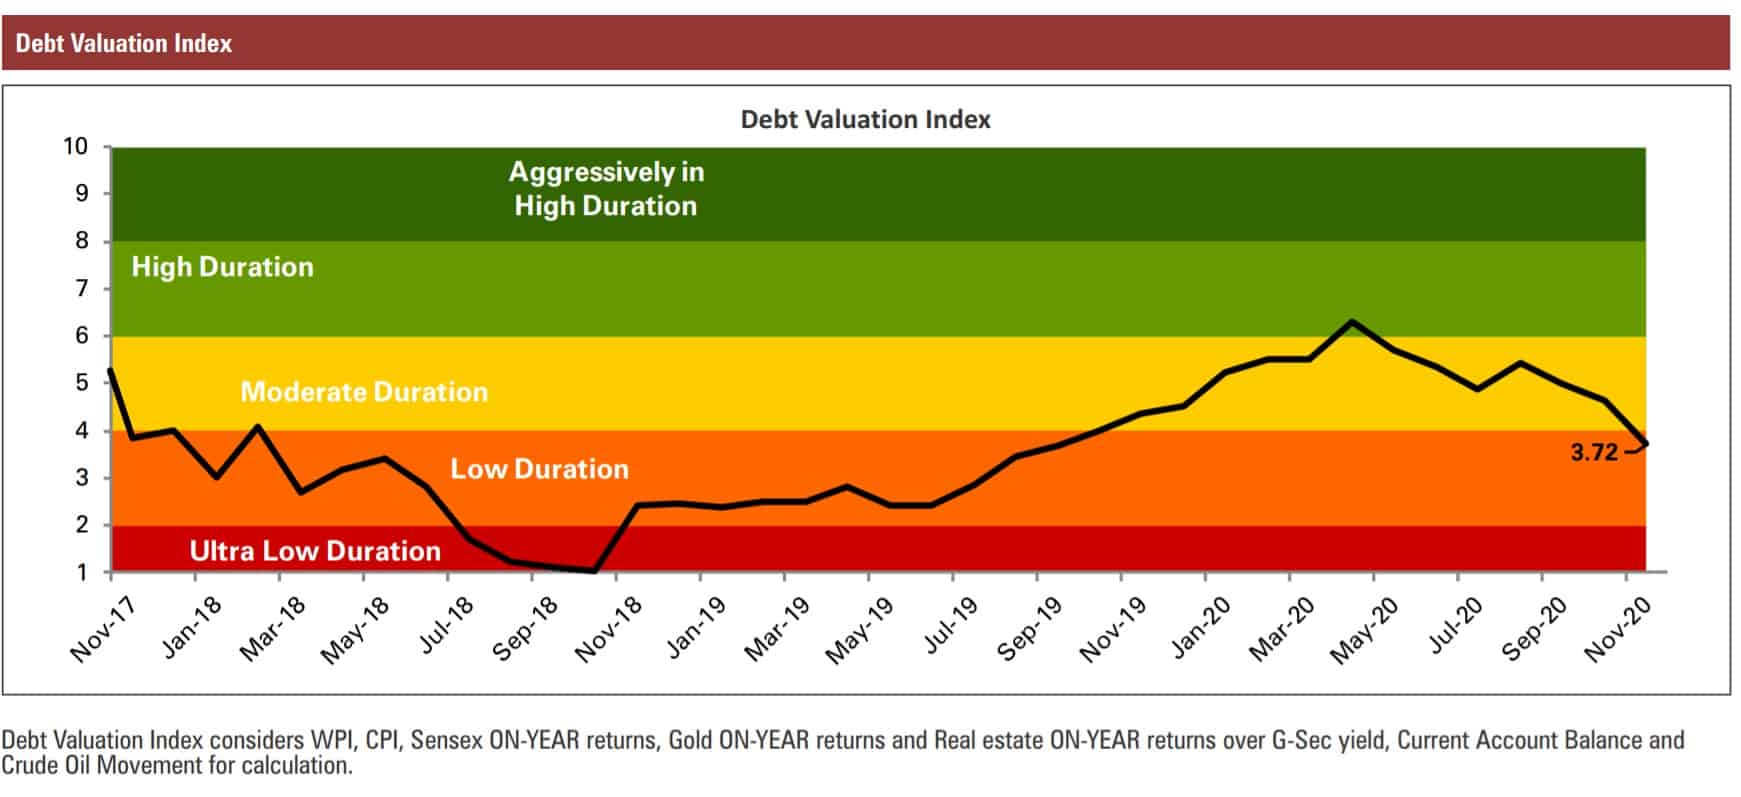 ICICI Debt Valuation Index